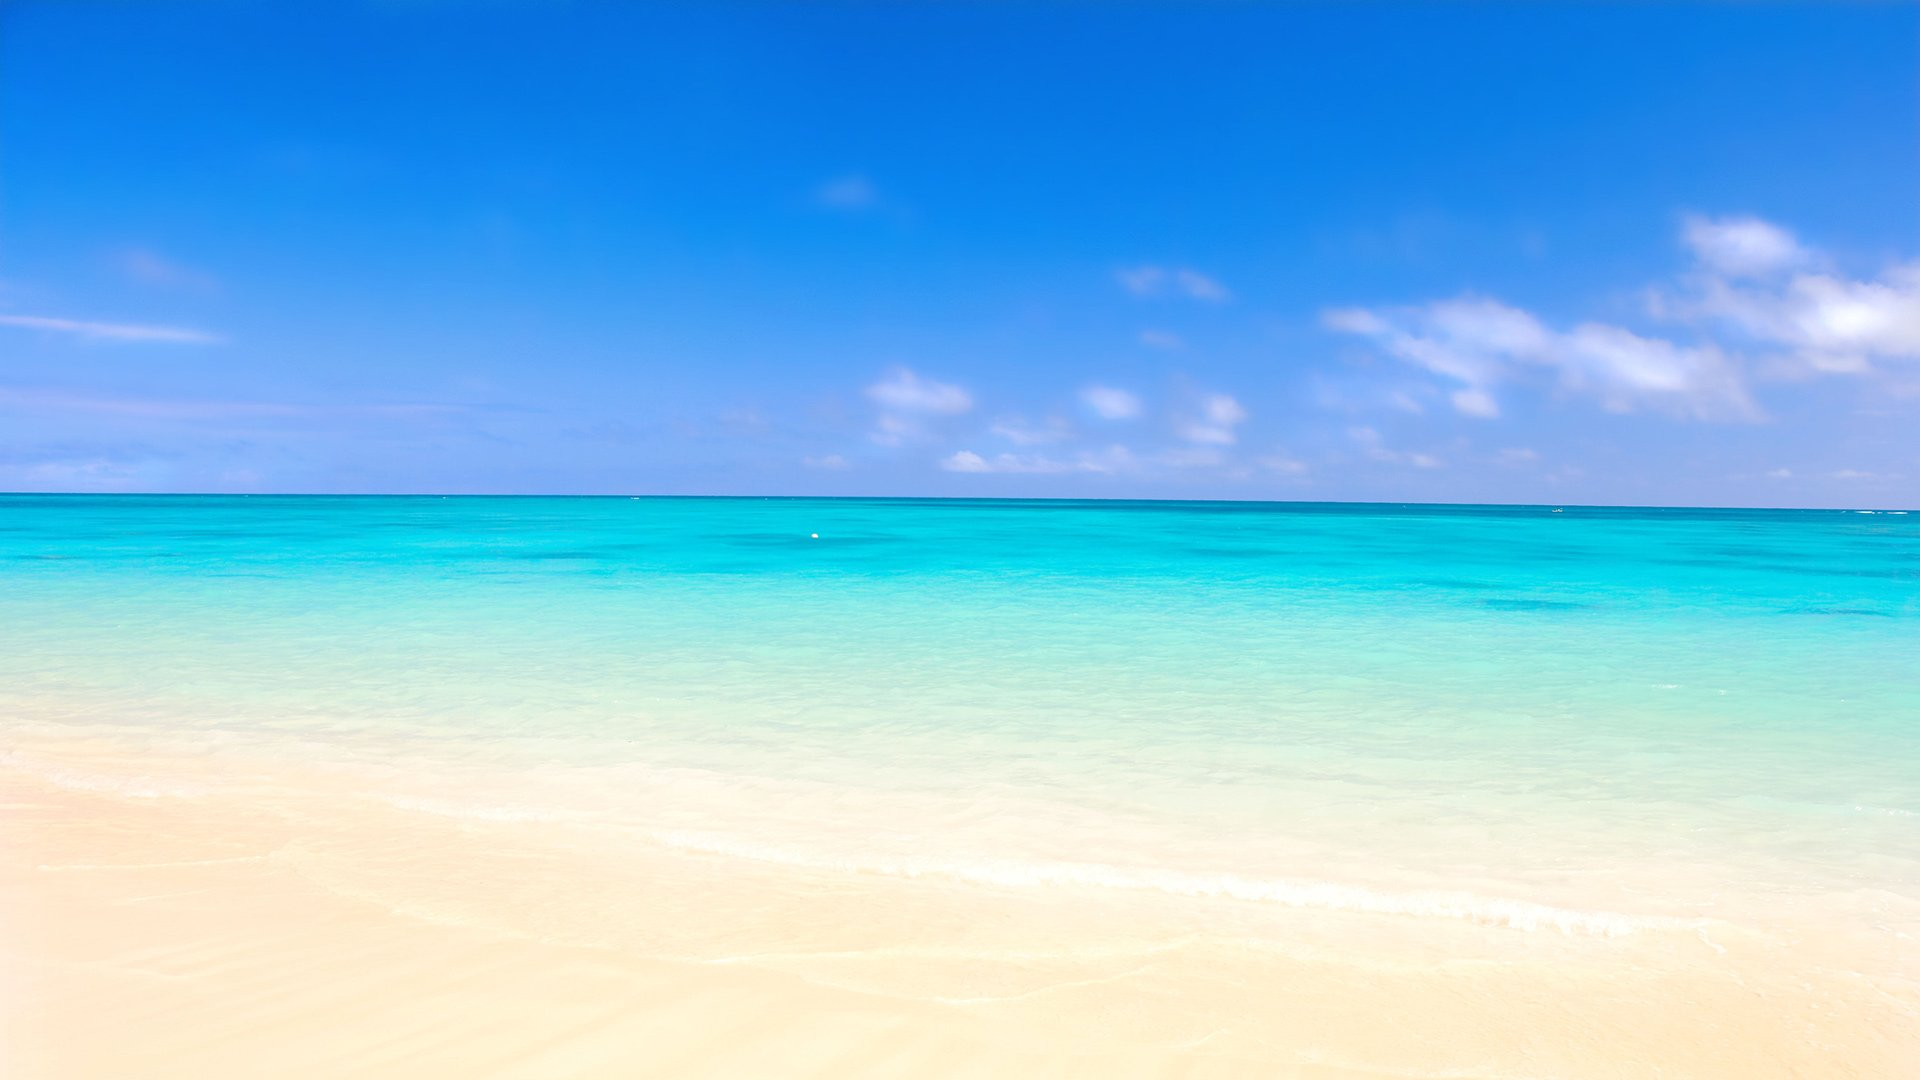 10 Best Tropical Beach Desktop Backgrounds Full Hd 1920: Strand HD Wallpaper